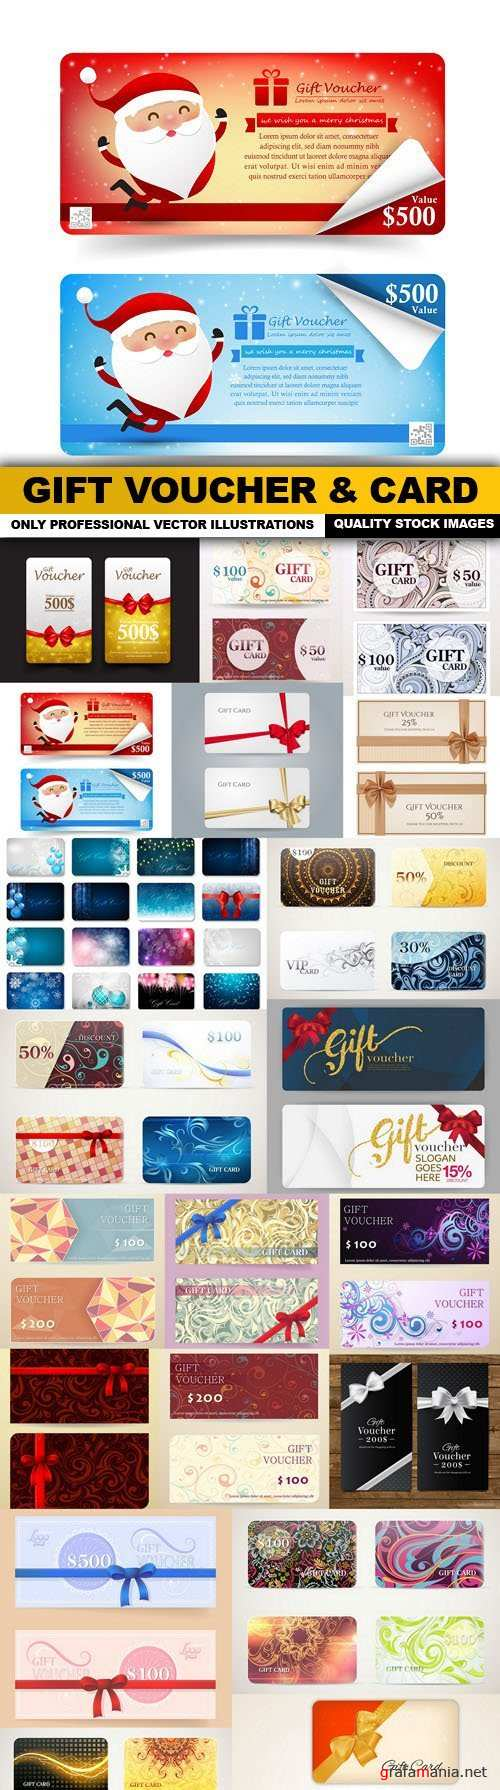 Gift Voucher & Card - 20 Vector